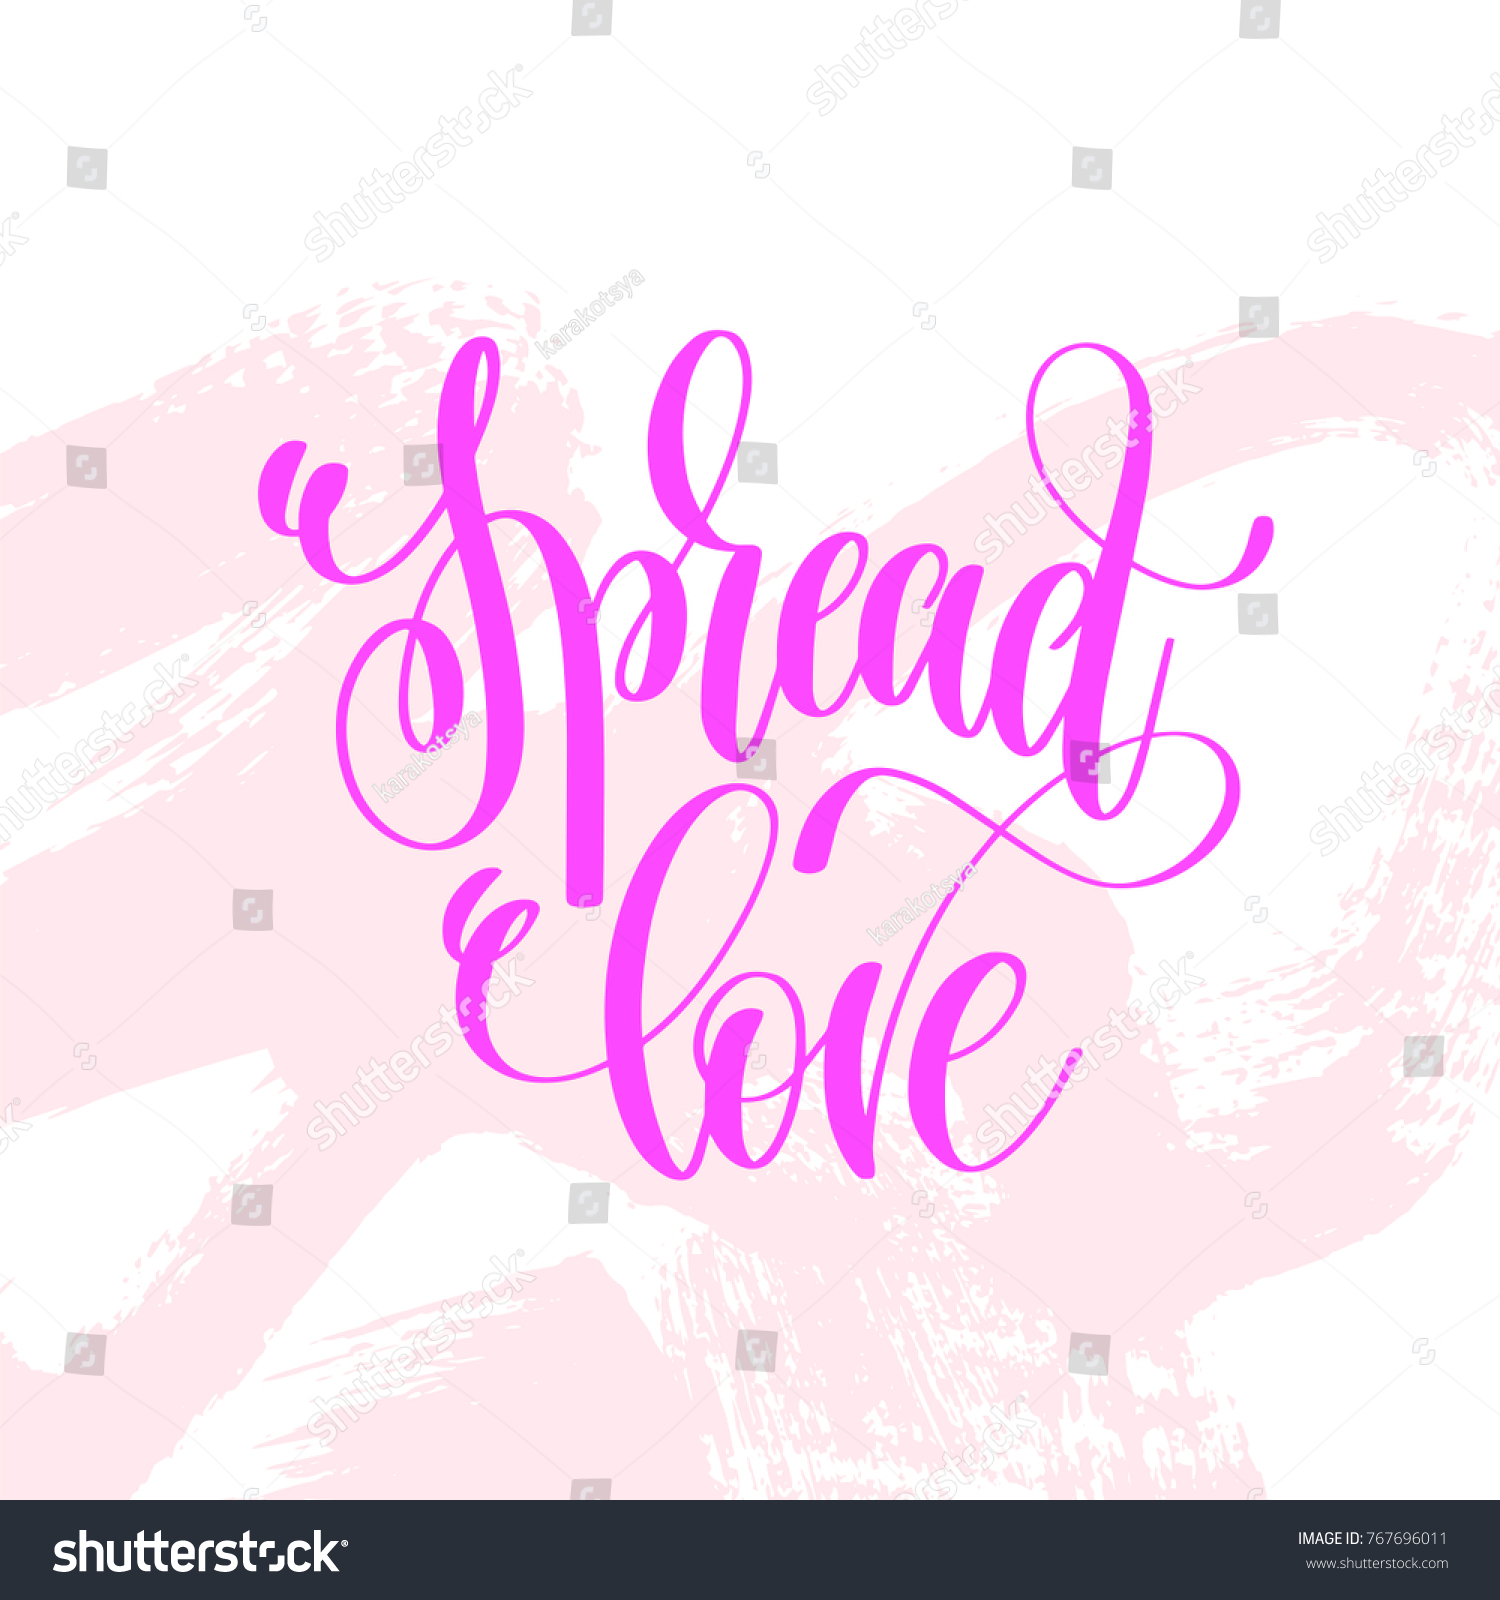 Spread Love Hand Lettering Poster On Pink Brush Stroke Pattern